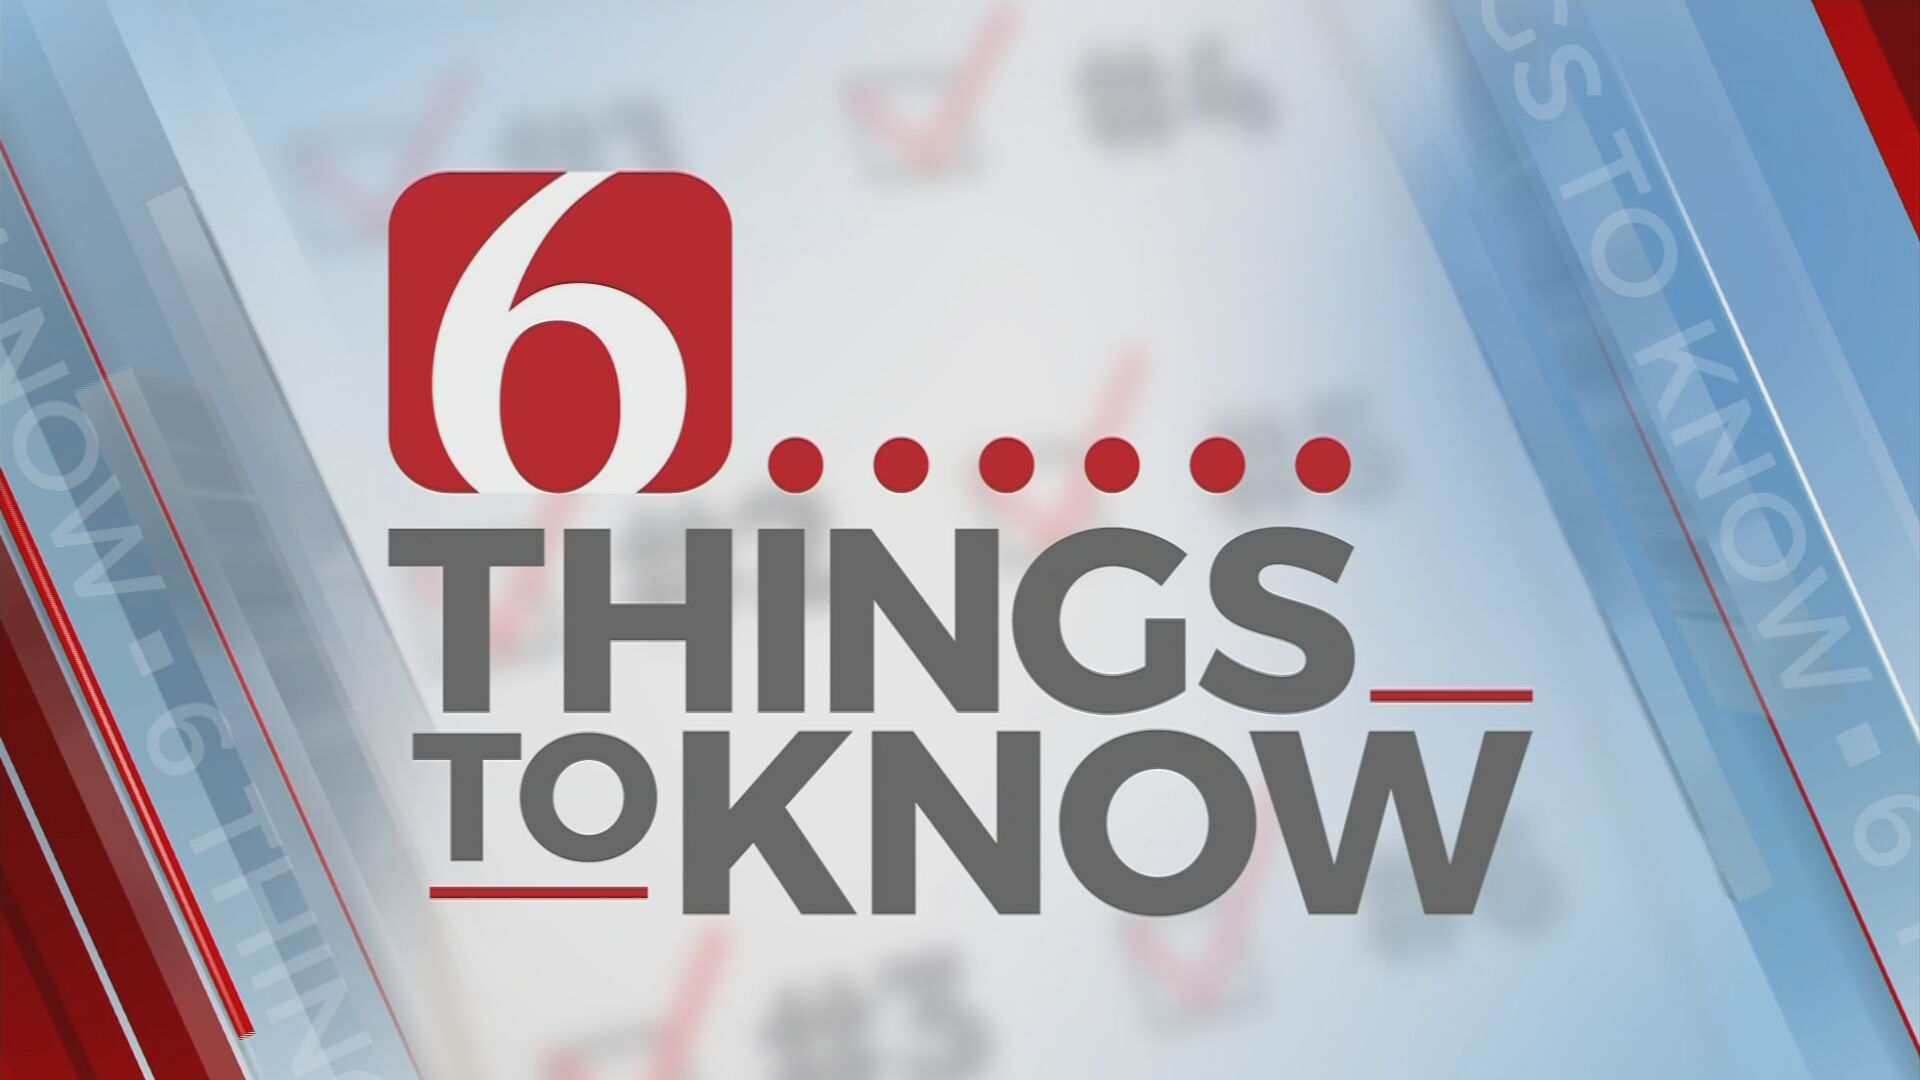 6 Things To Know (Sept 29): Presidential Debate & National Coffee Day